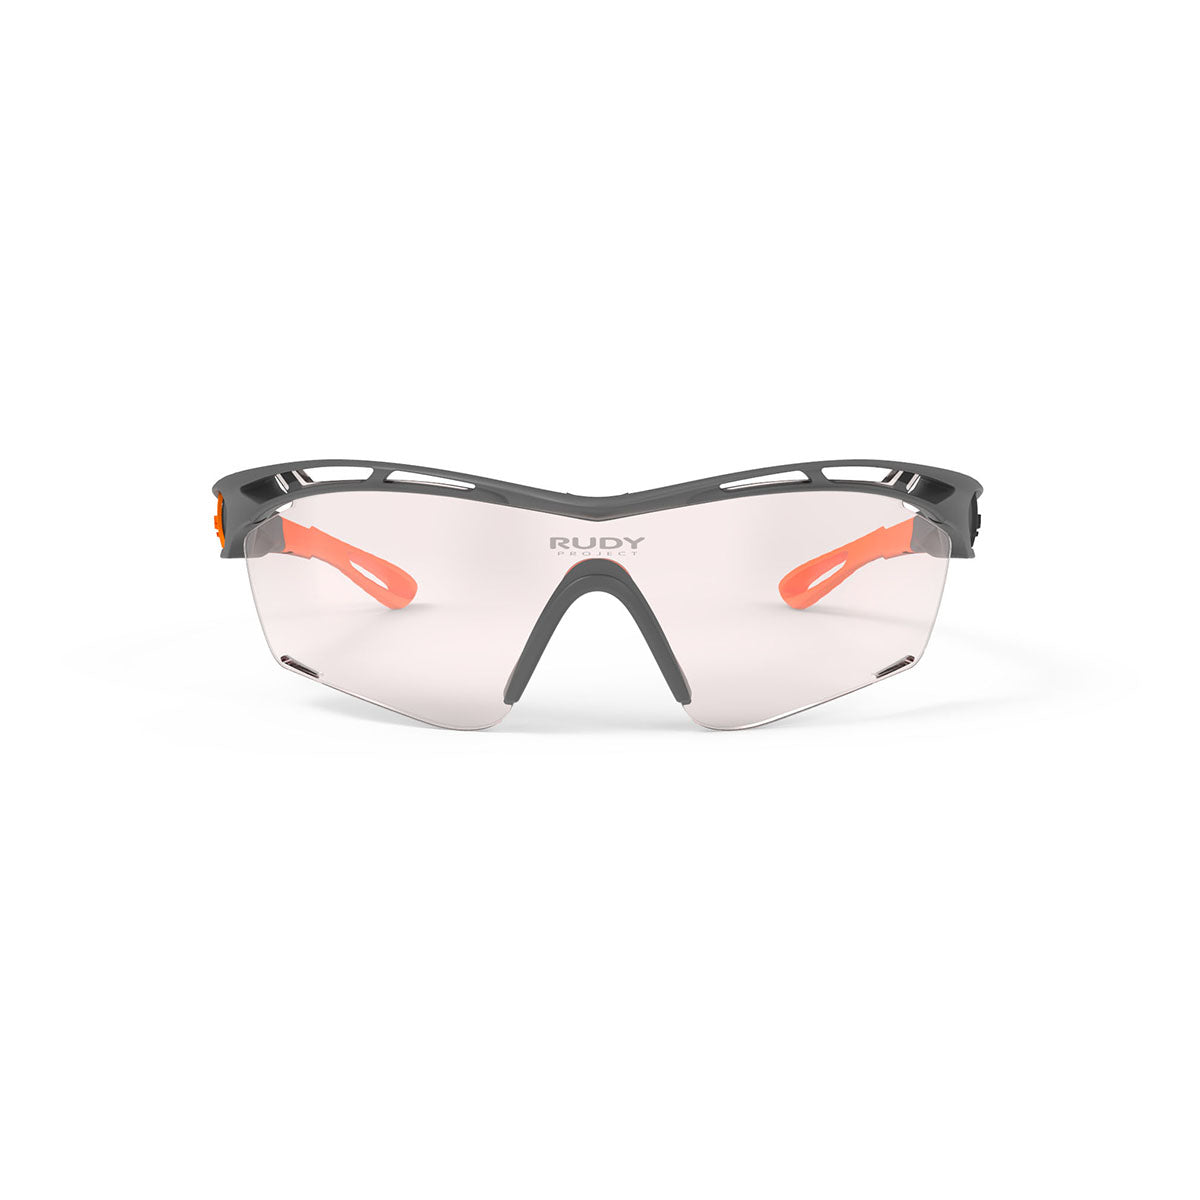 Rudy Project - Tralyx Golf - frame color: Pyombo Matte - lens color: IMPACTX-2 PHOTOCHROMIC PHOTOCHROMIC CLEAR TO RED LENSES - photo angle: Front View Variant Hover Image